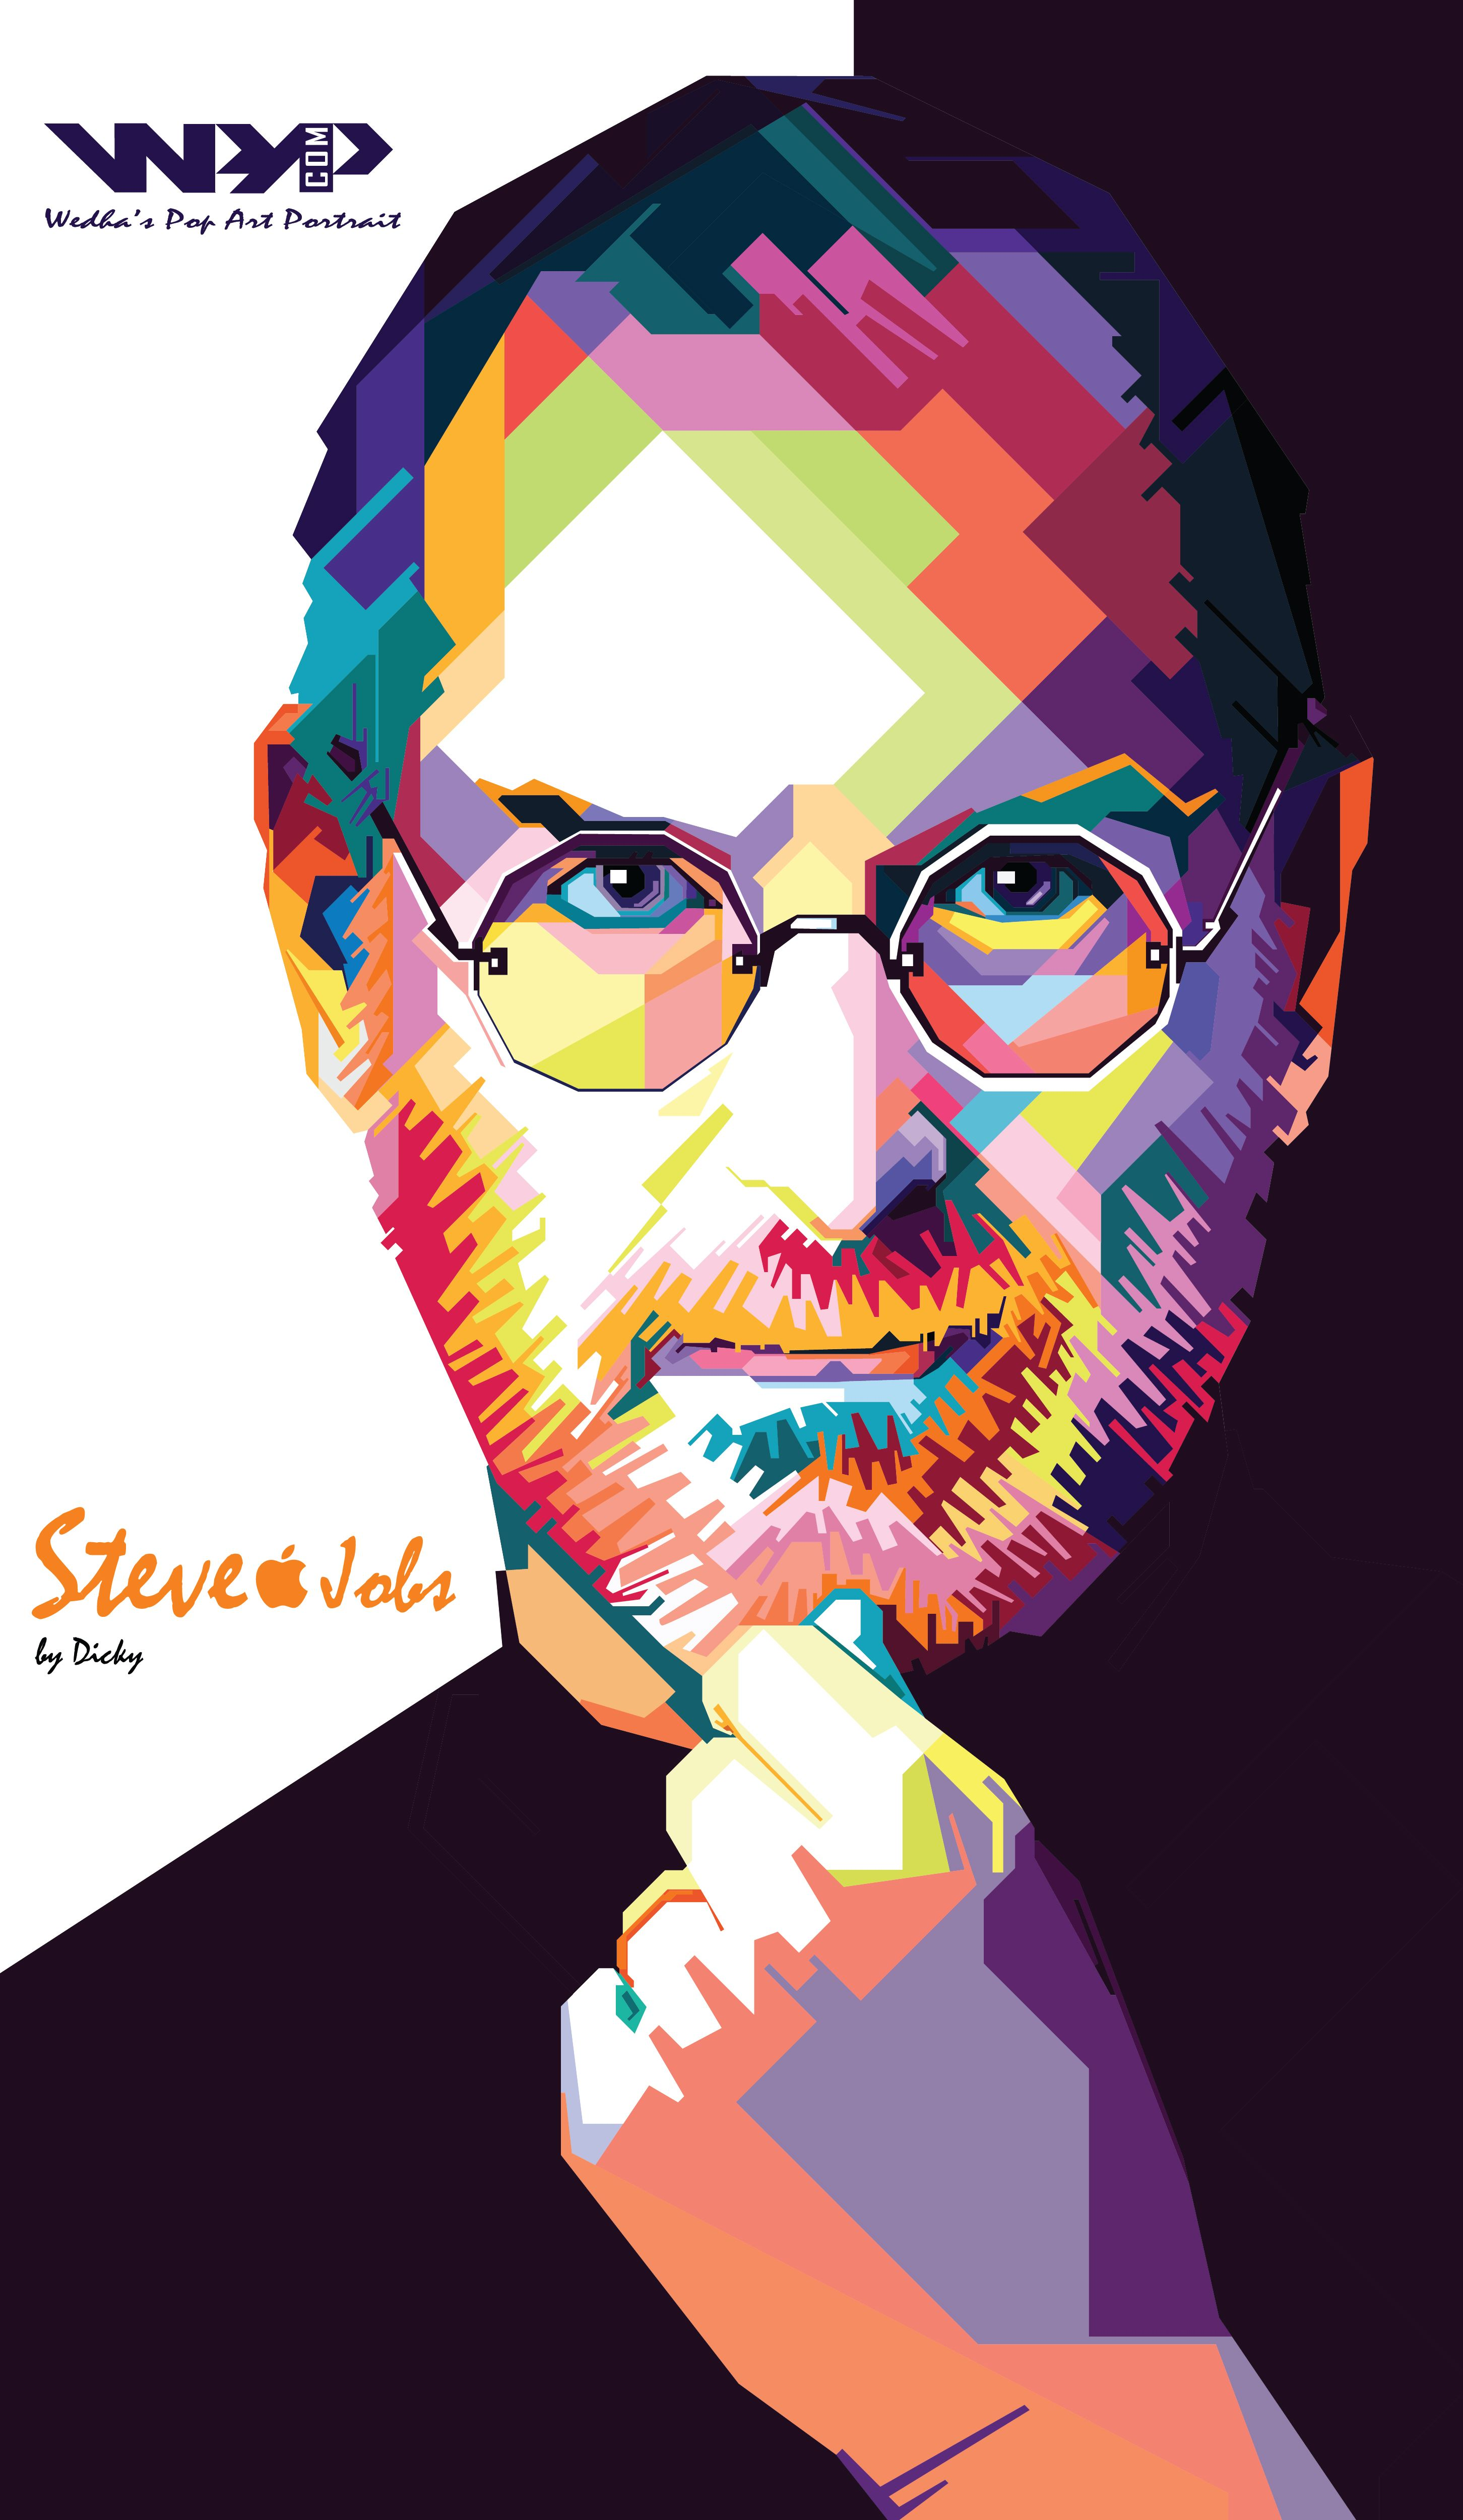 Keith Haring Iphone Wallpaper Steve Jobs In Wpap By Parcok Wpap Project Artwork